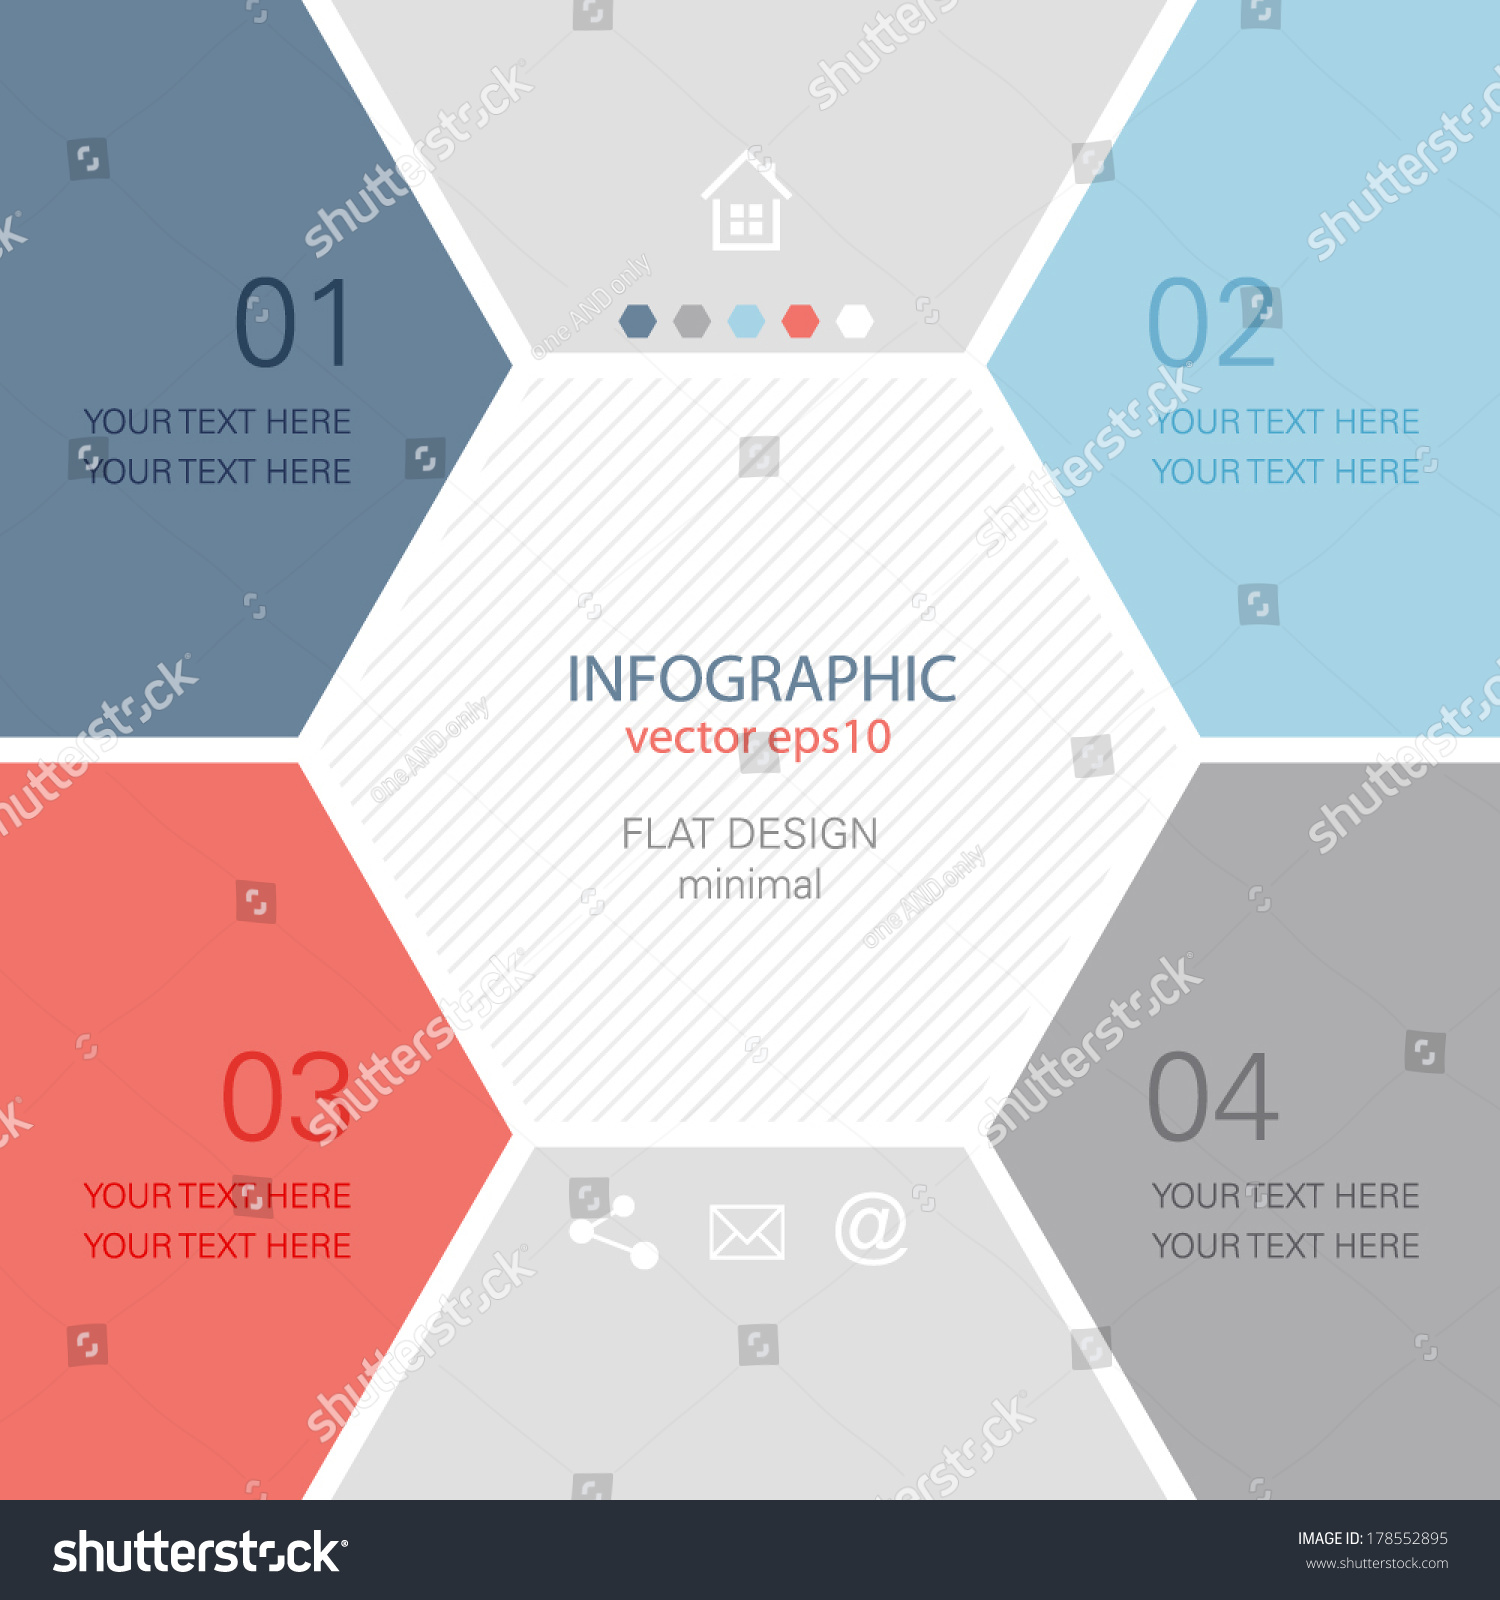 Info graphic design minimal hexagon brochure stock vector for Graphic design brochure templates